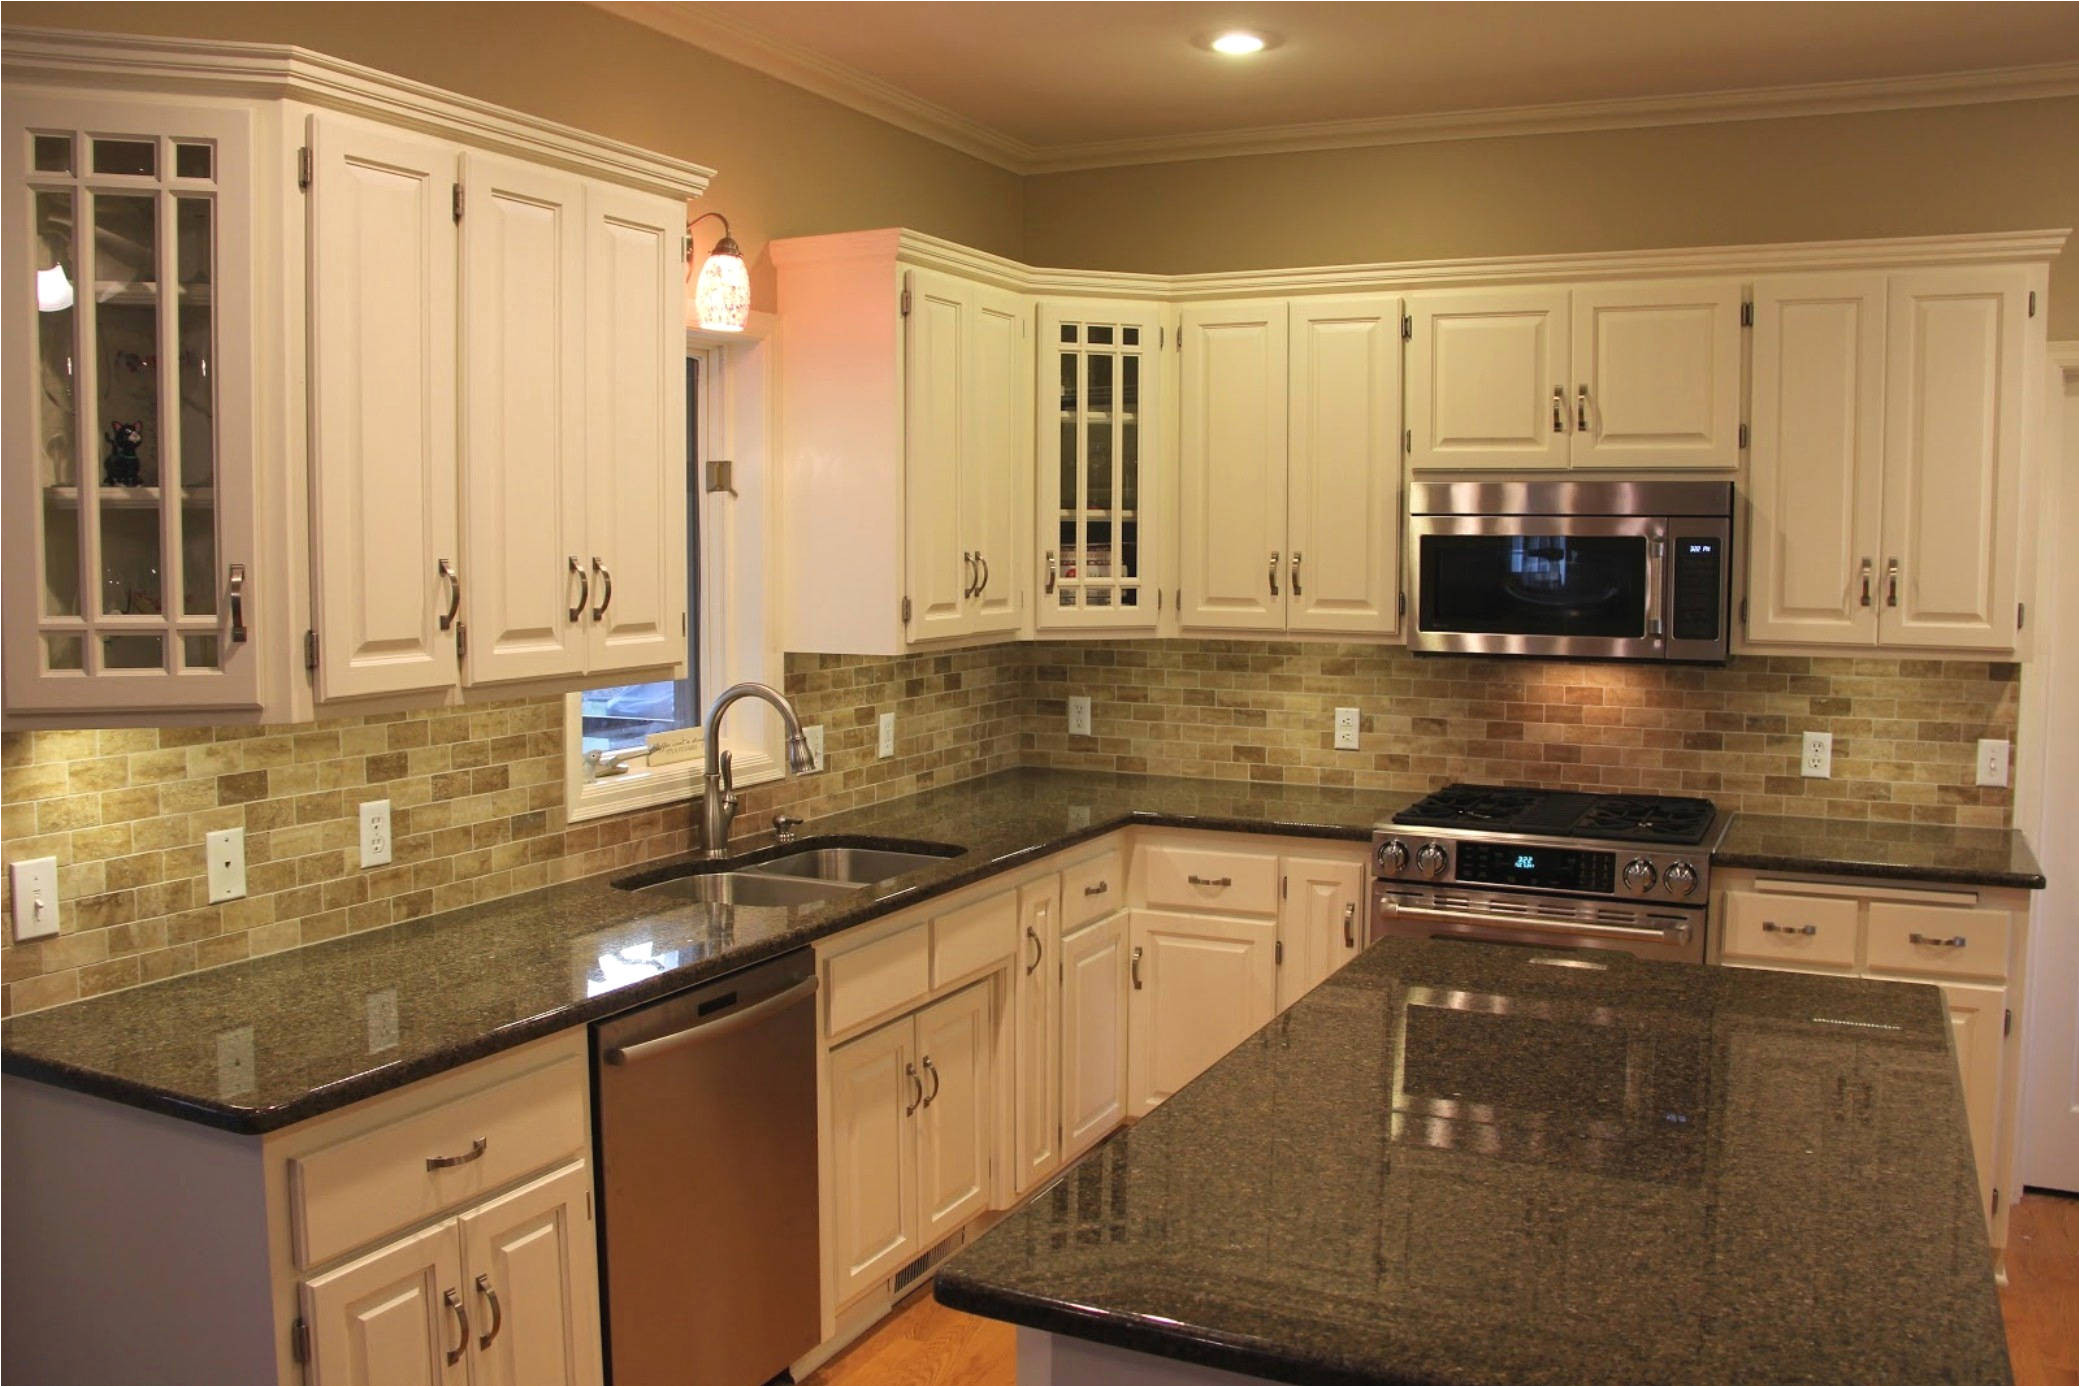 granite countertops elberton ga inspirational lovely kitchen cabinets with granite countertops stock home ideas